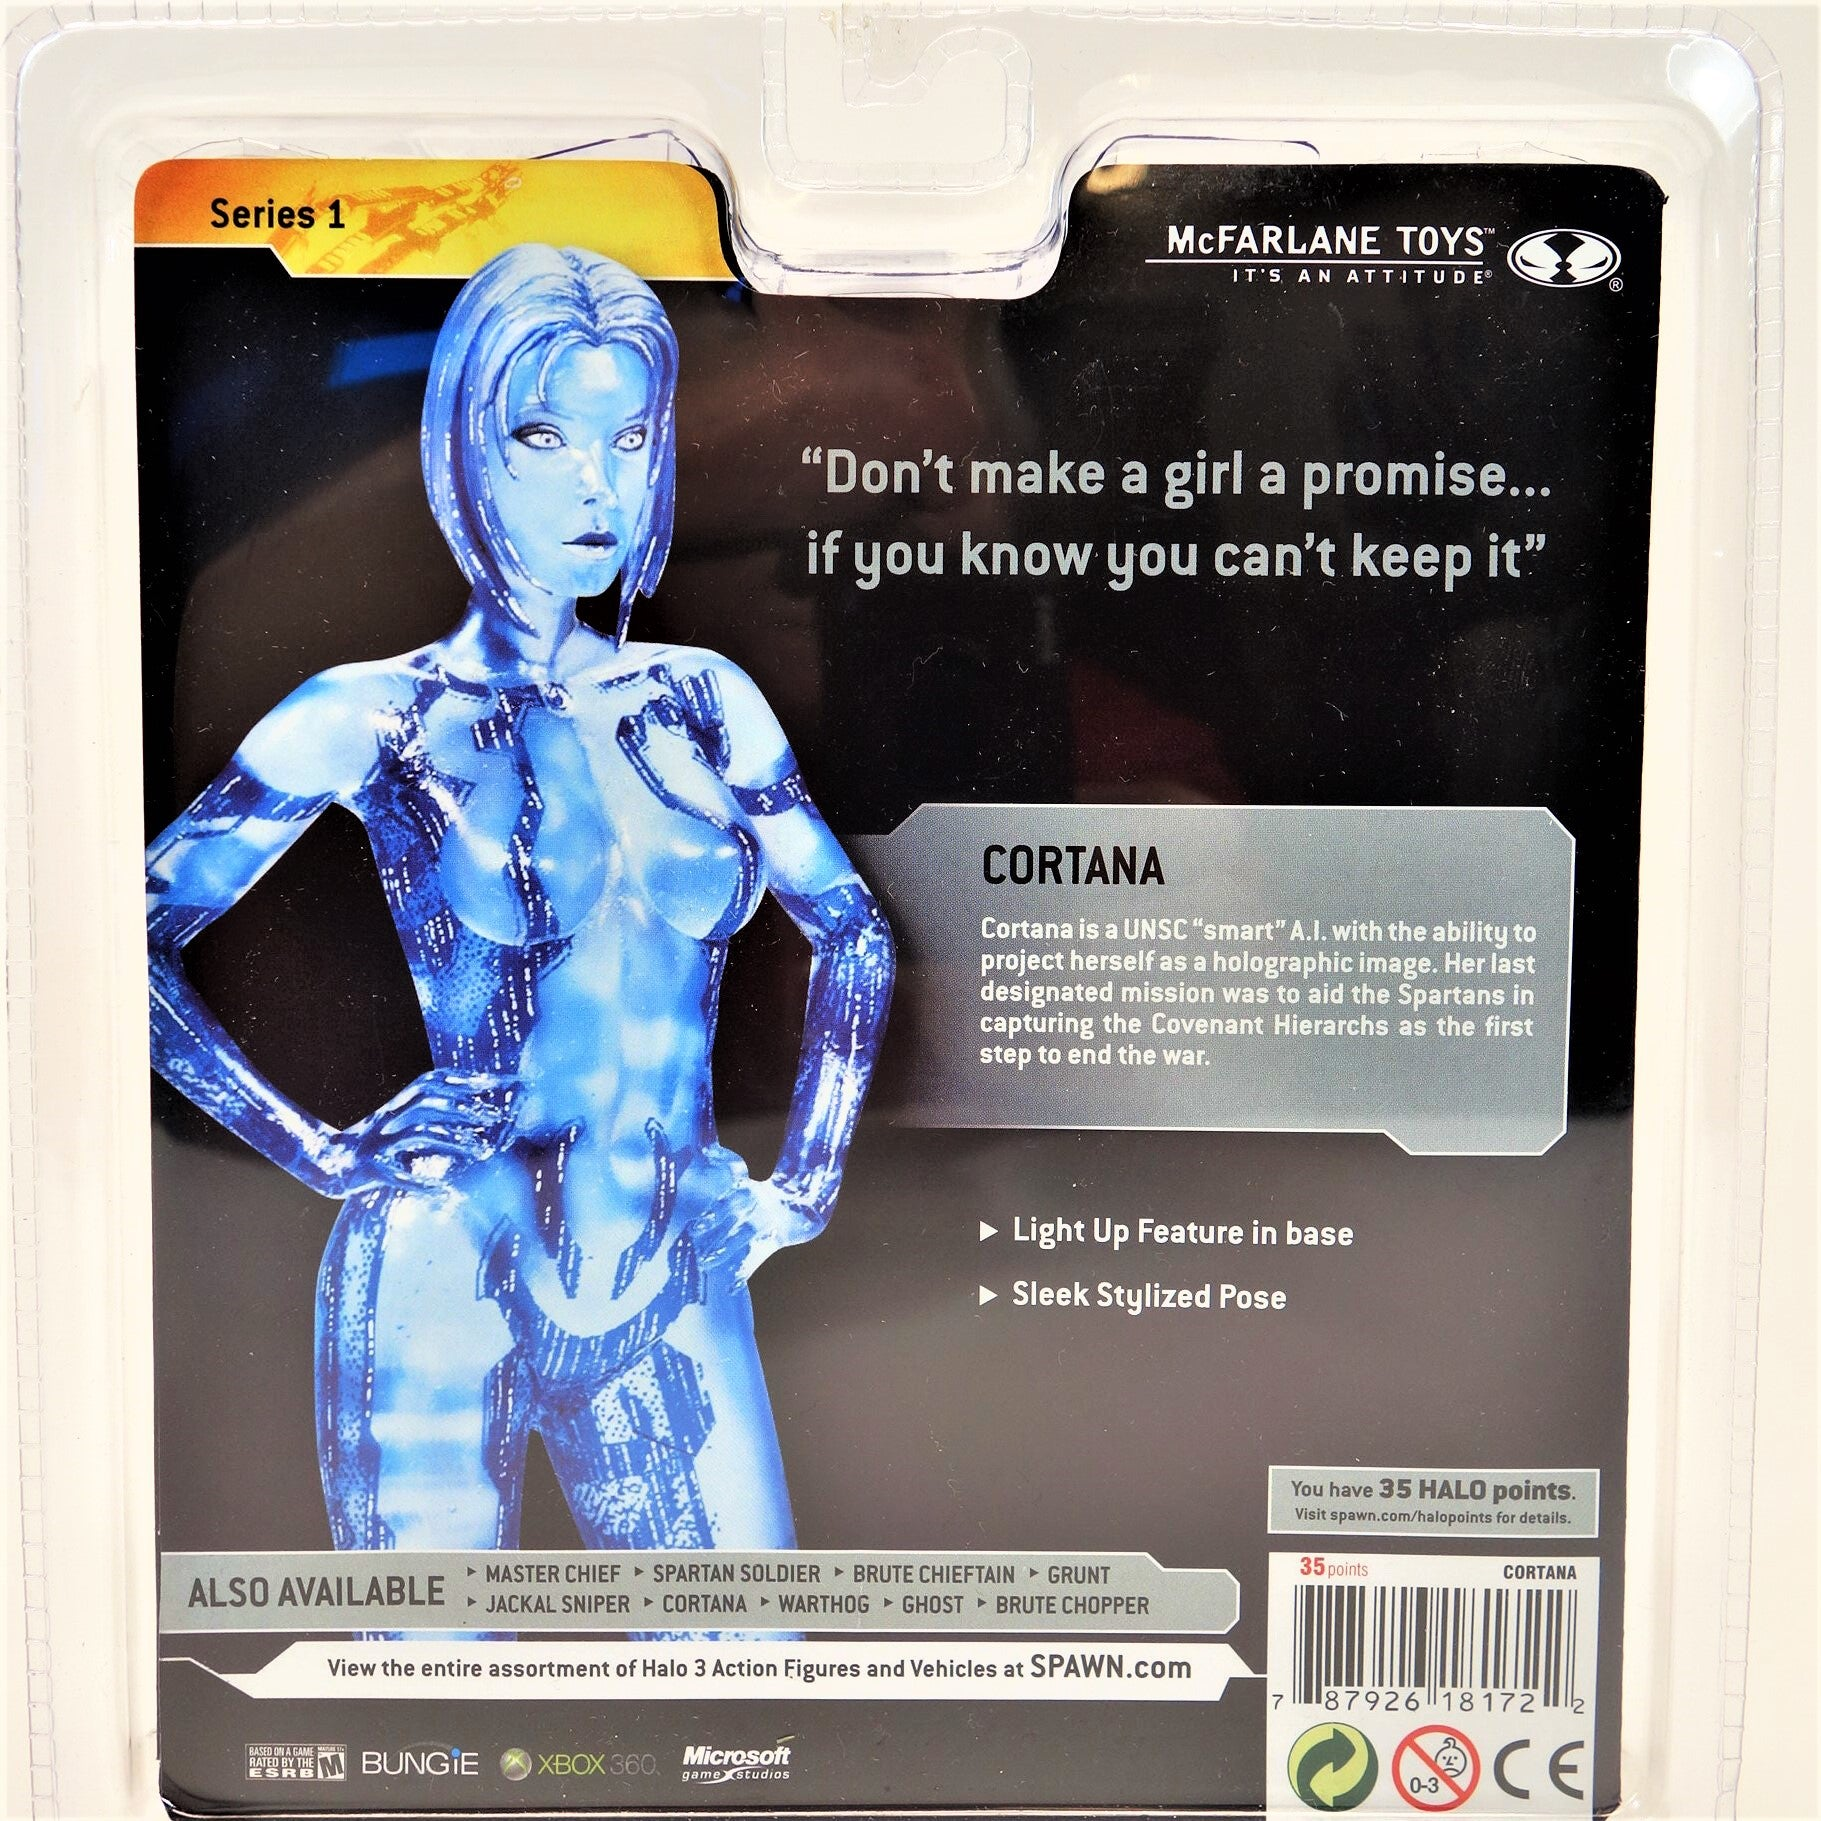 McFarlane Halo 3 Series 1 Cortana Light Up Action Figure 2008 – The